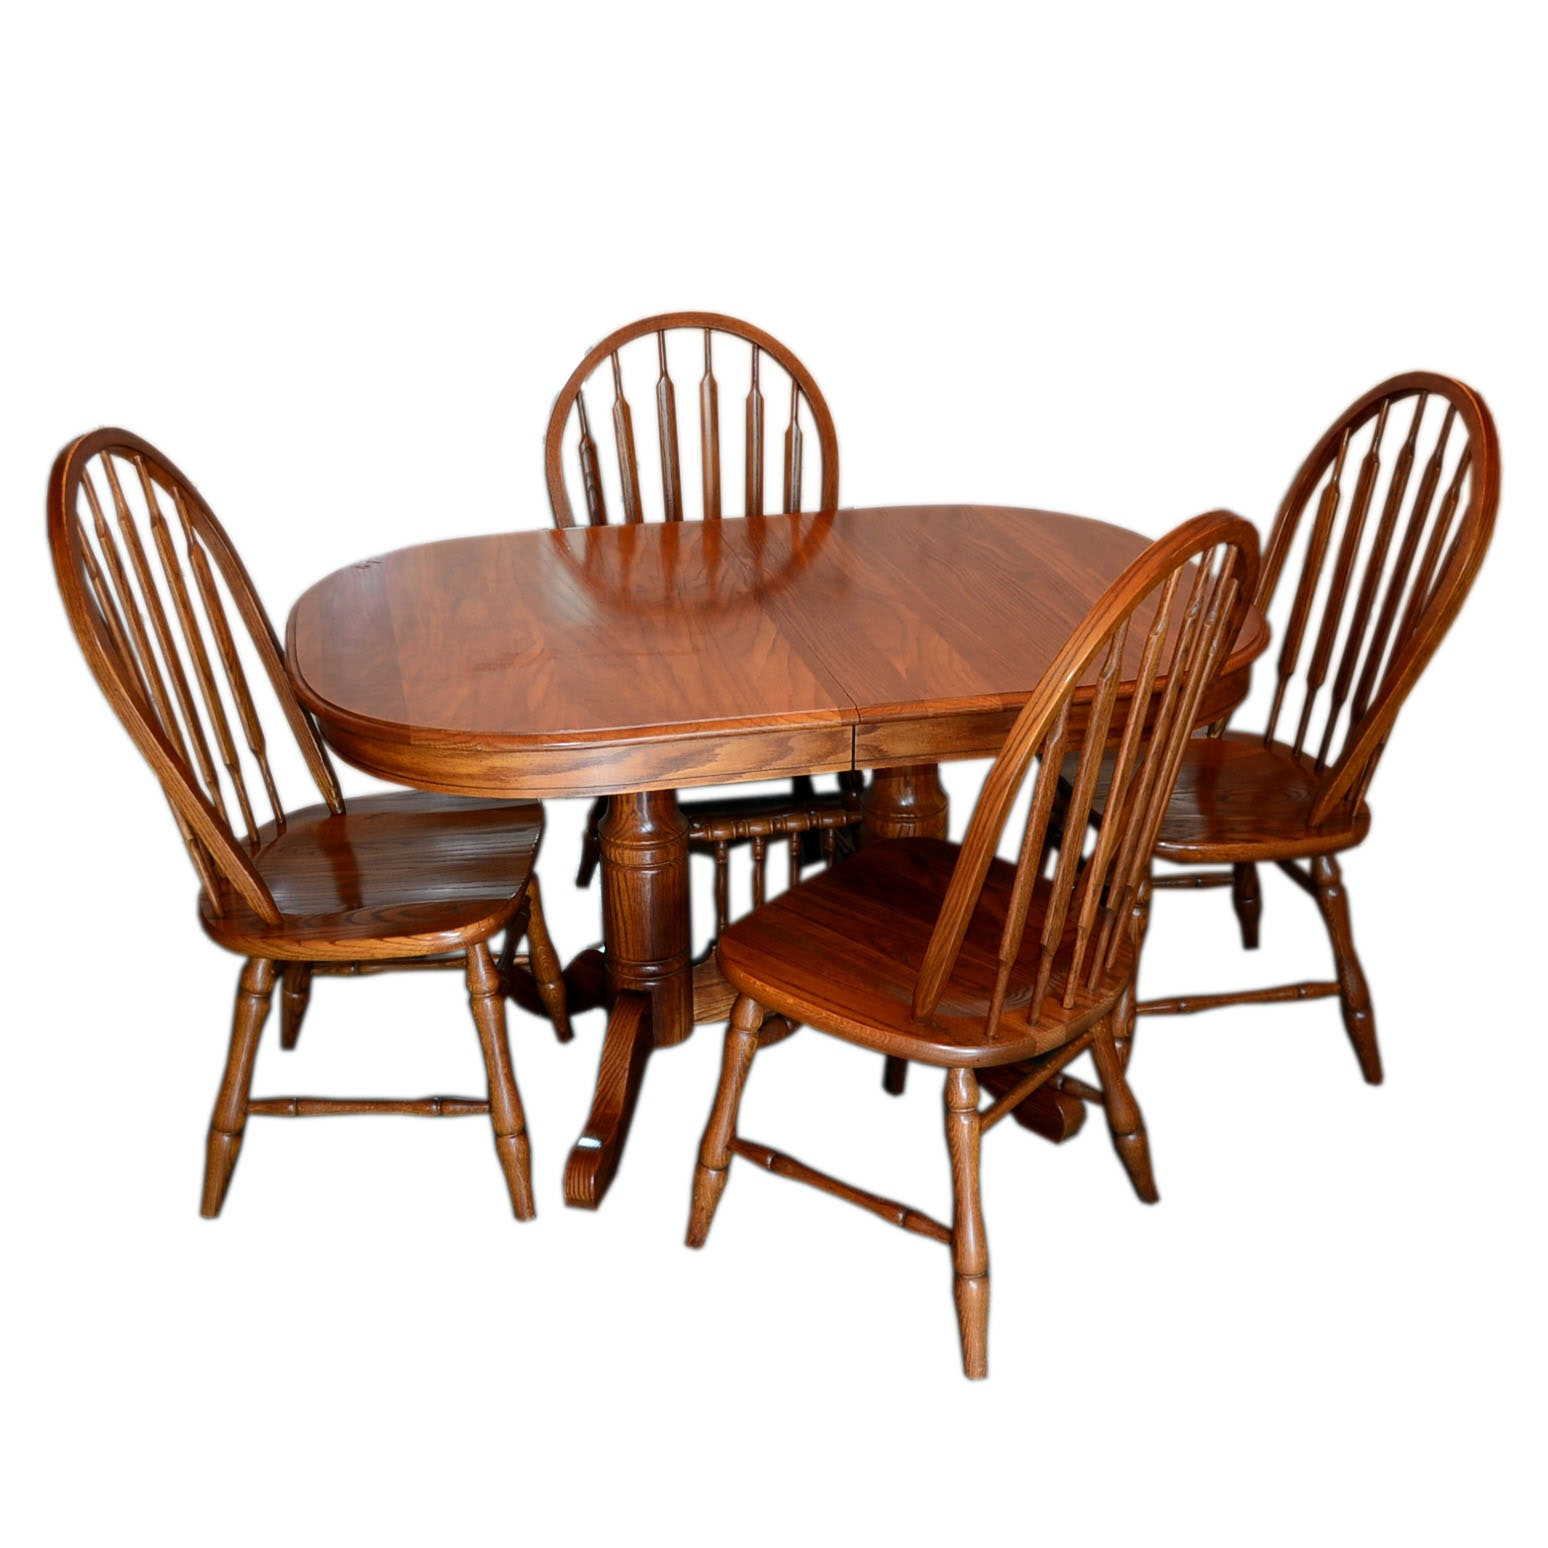 Wonderful Tell City Oak Dining Table And Dining Chairs ... Part 16